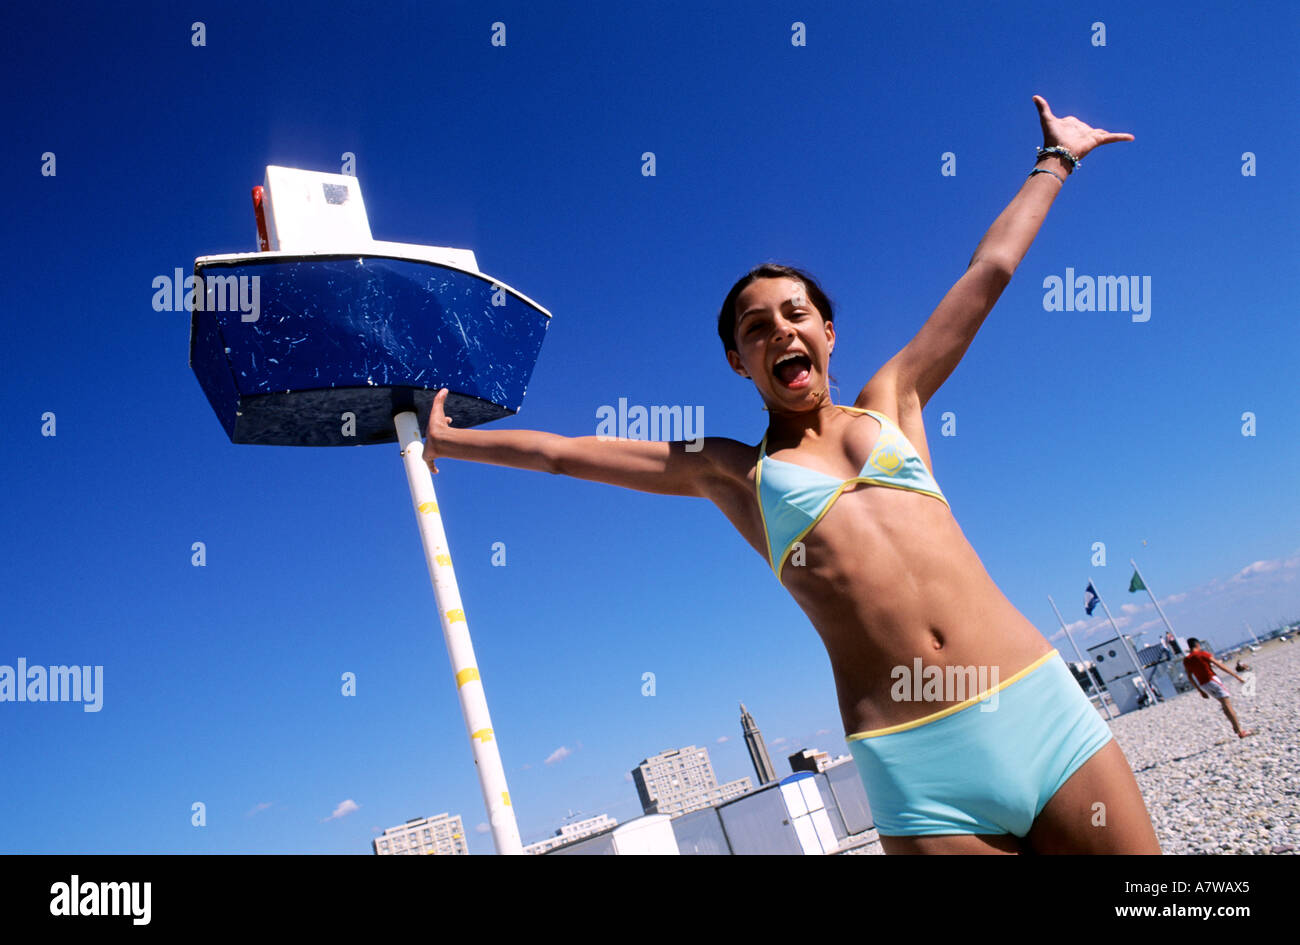 France, Seine Maritime, Le Havre, teenager on the beach - Stock Image